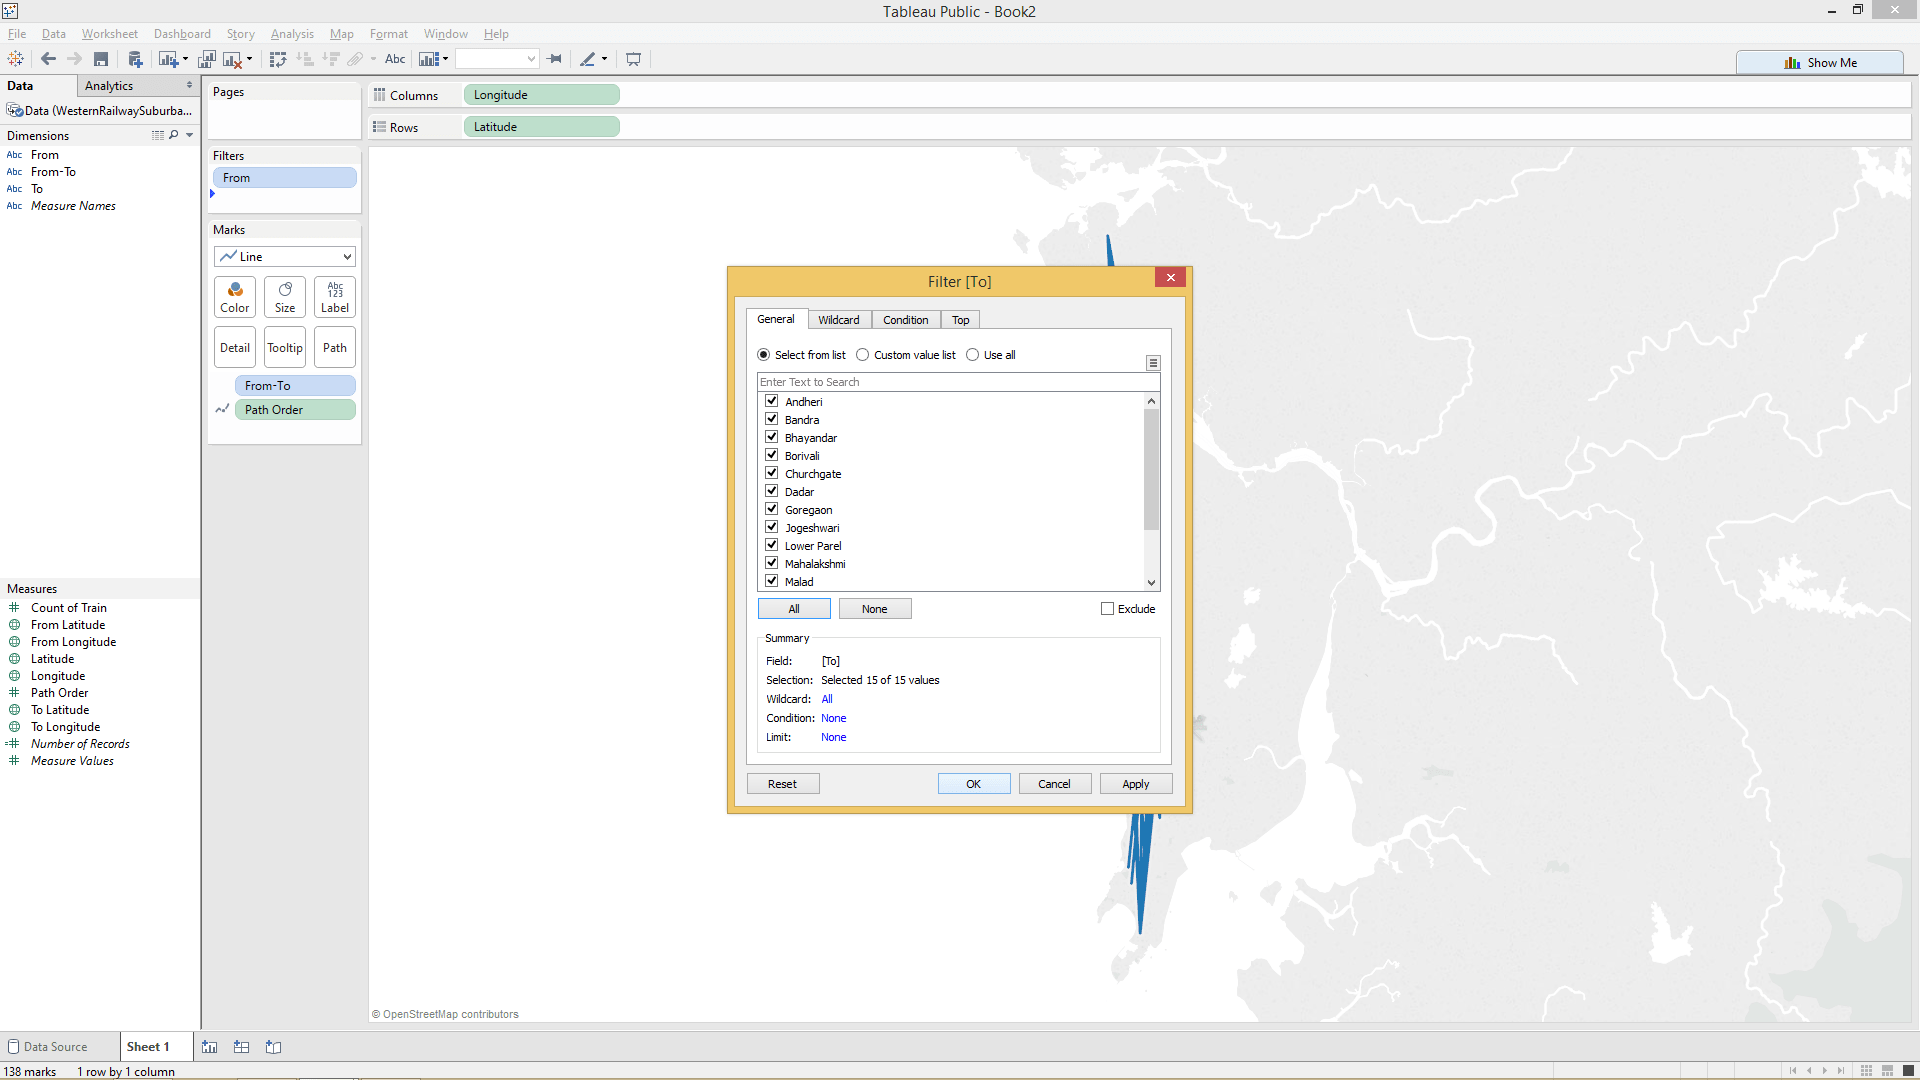 adding filters in tableau